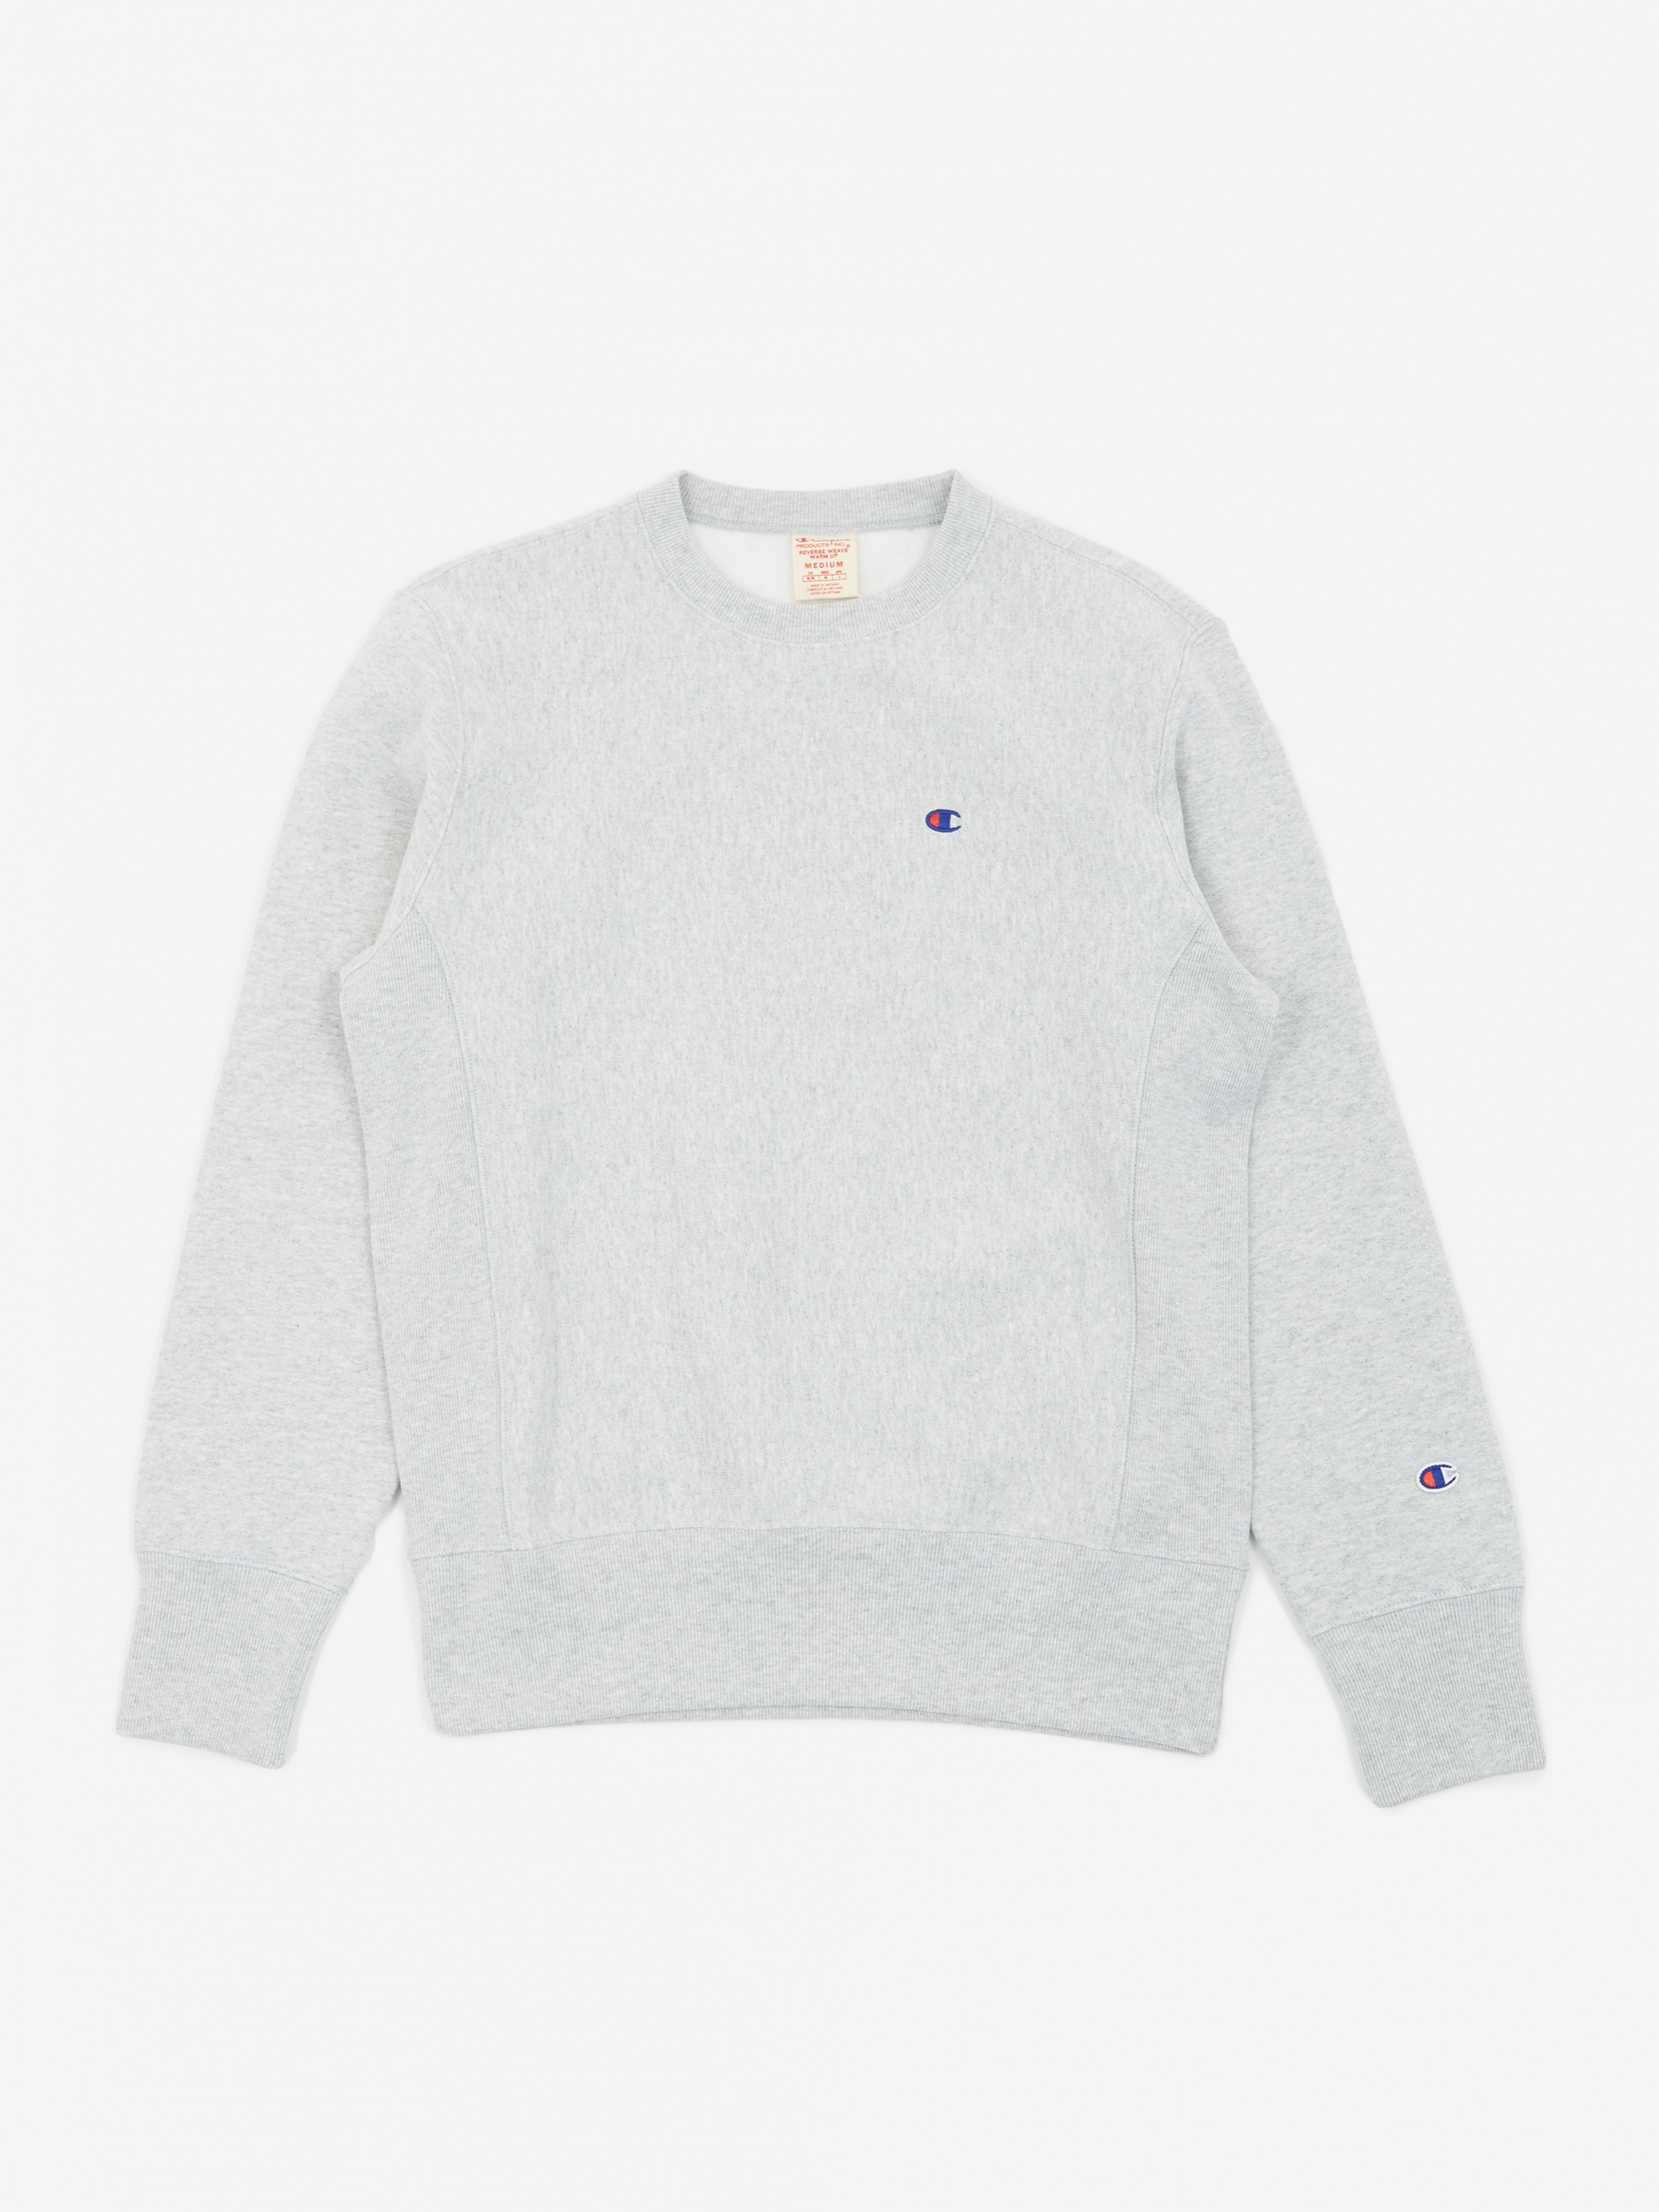 6bd6eb1f Champion Reverse Weave Crew Neck Sweatshirt - Grey